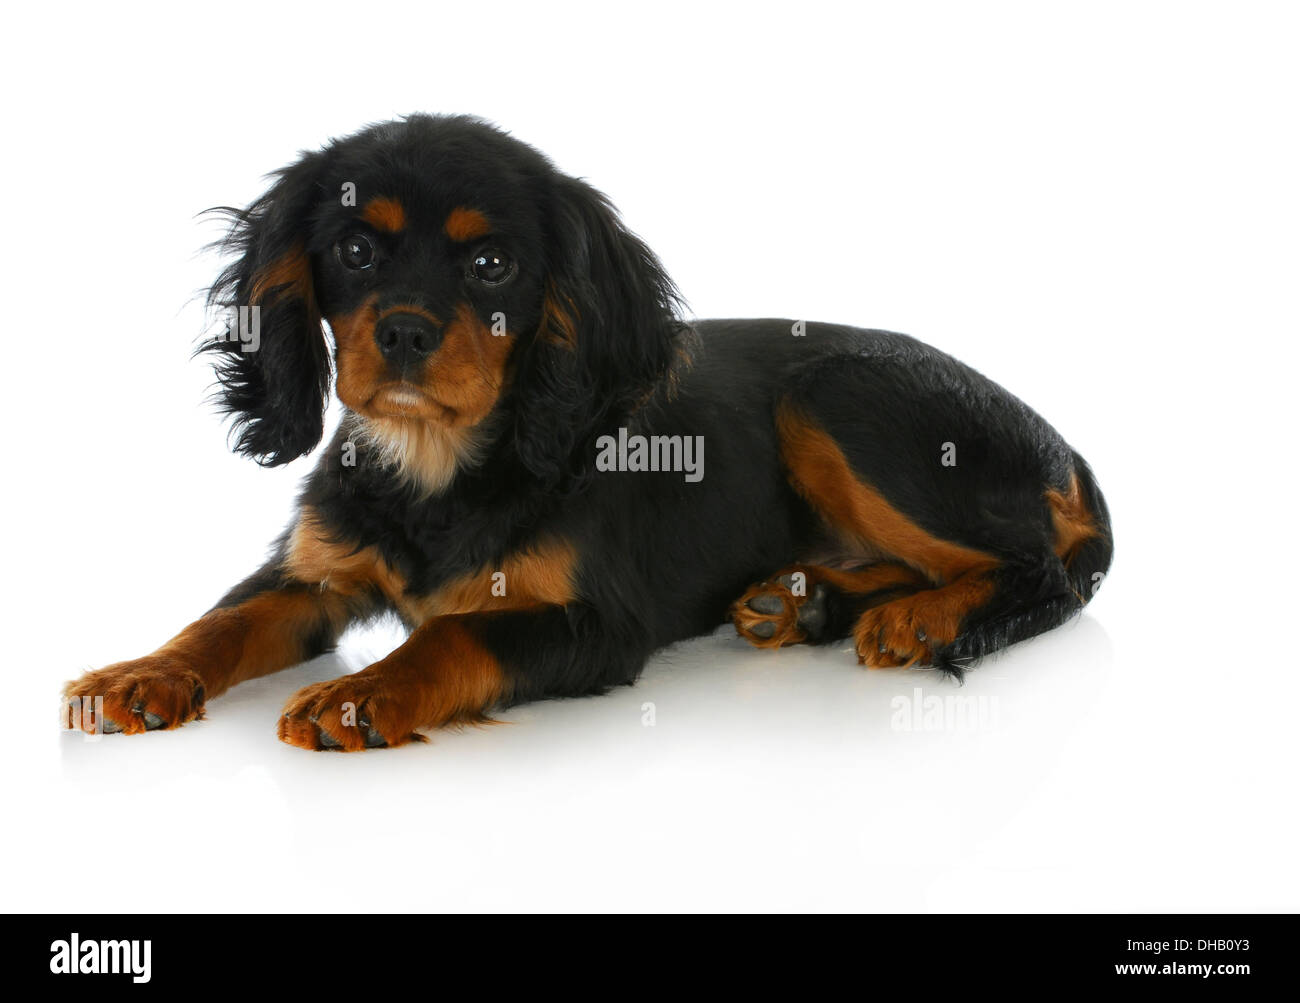 Cute Puppy Cavalier King Charles Spaniel Puppy Laying Down Black Stock Photo Alamy